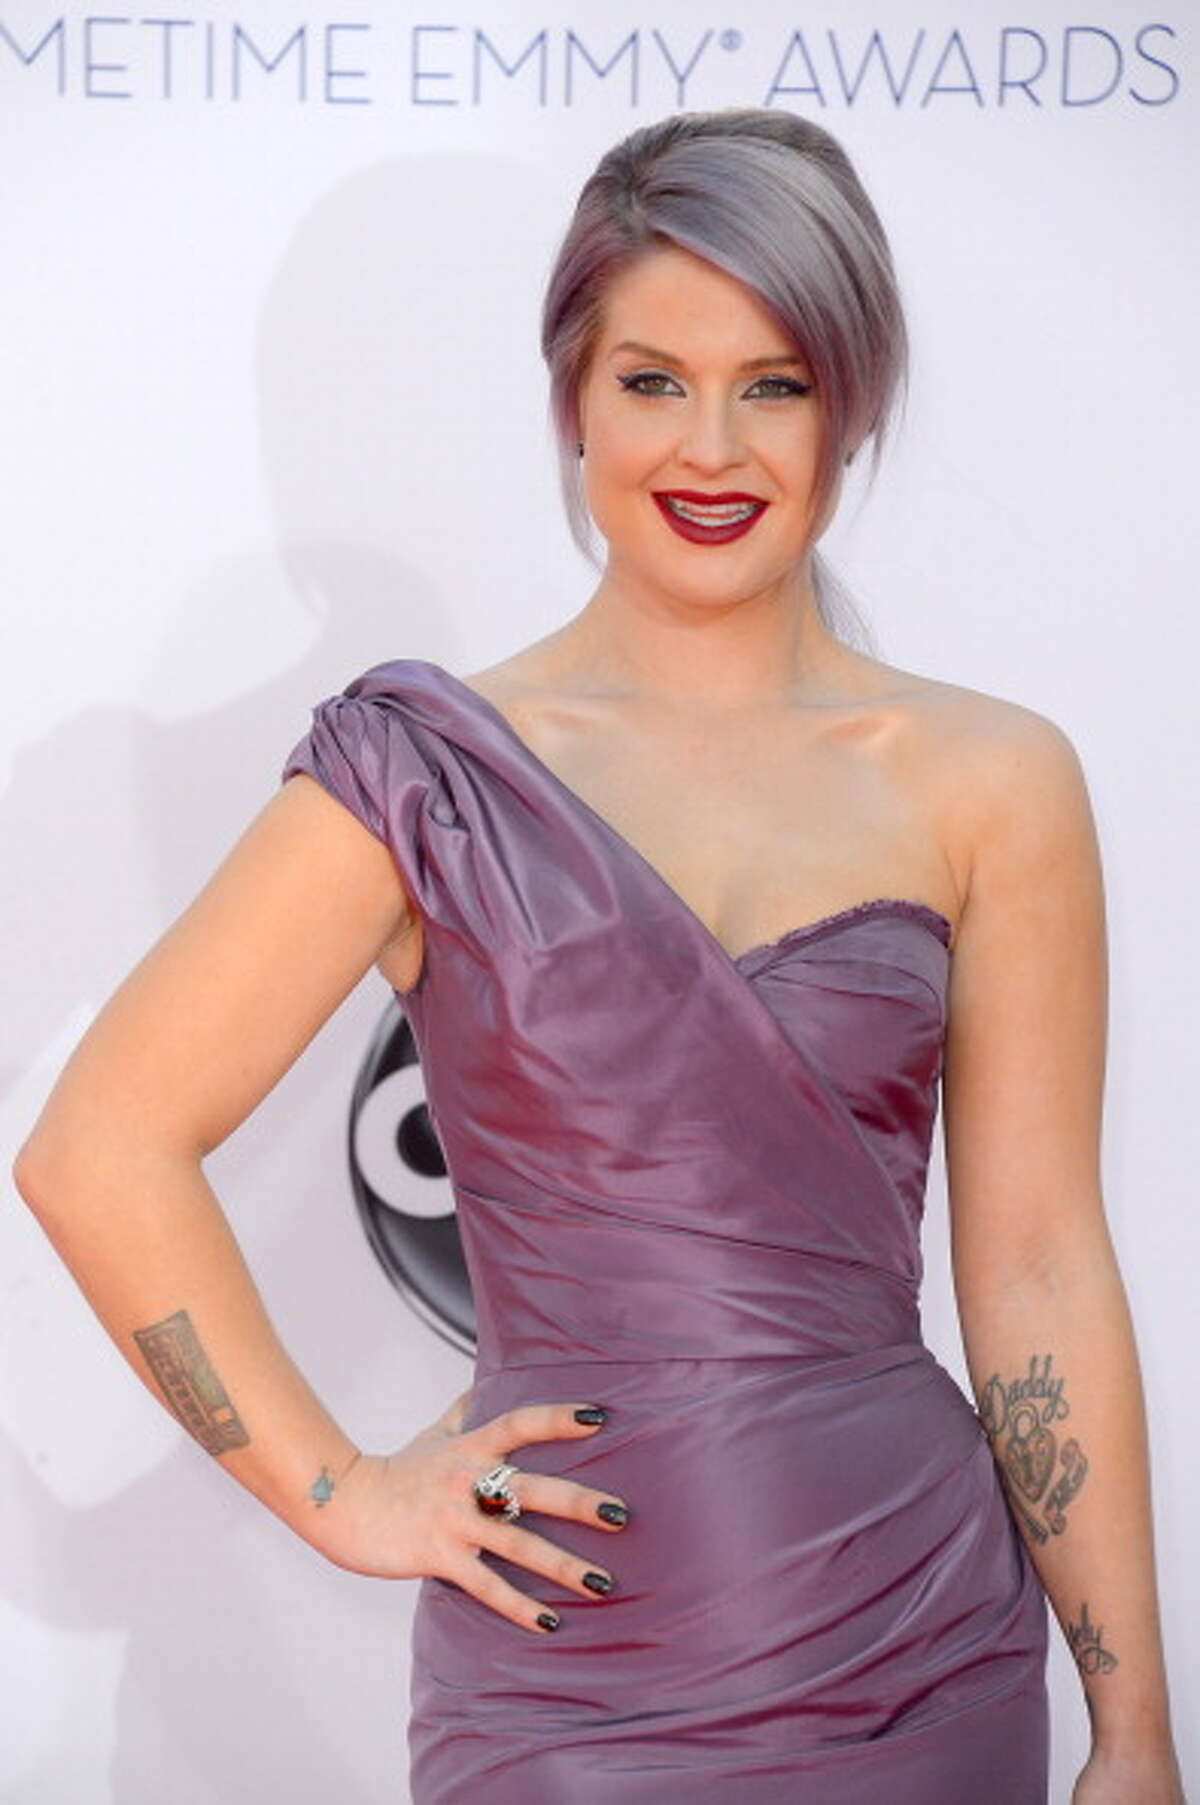 Famous for being famous, Kelly Osbourne.